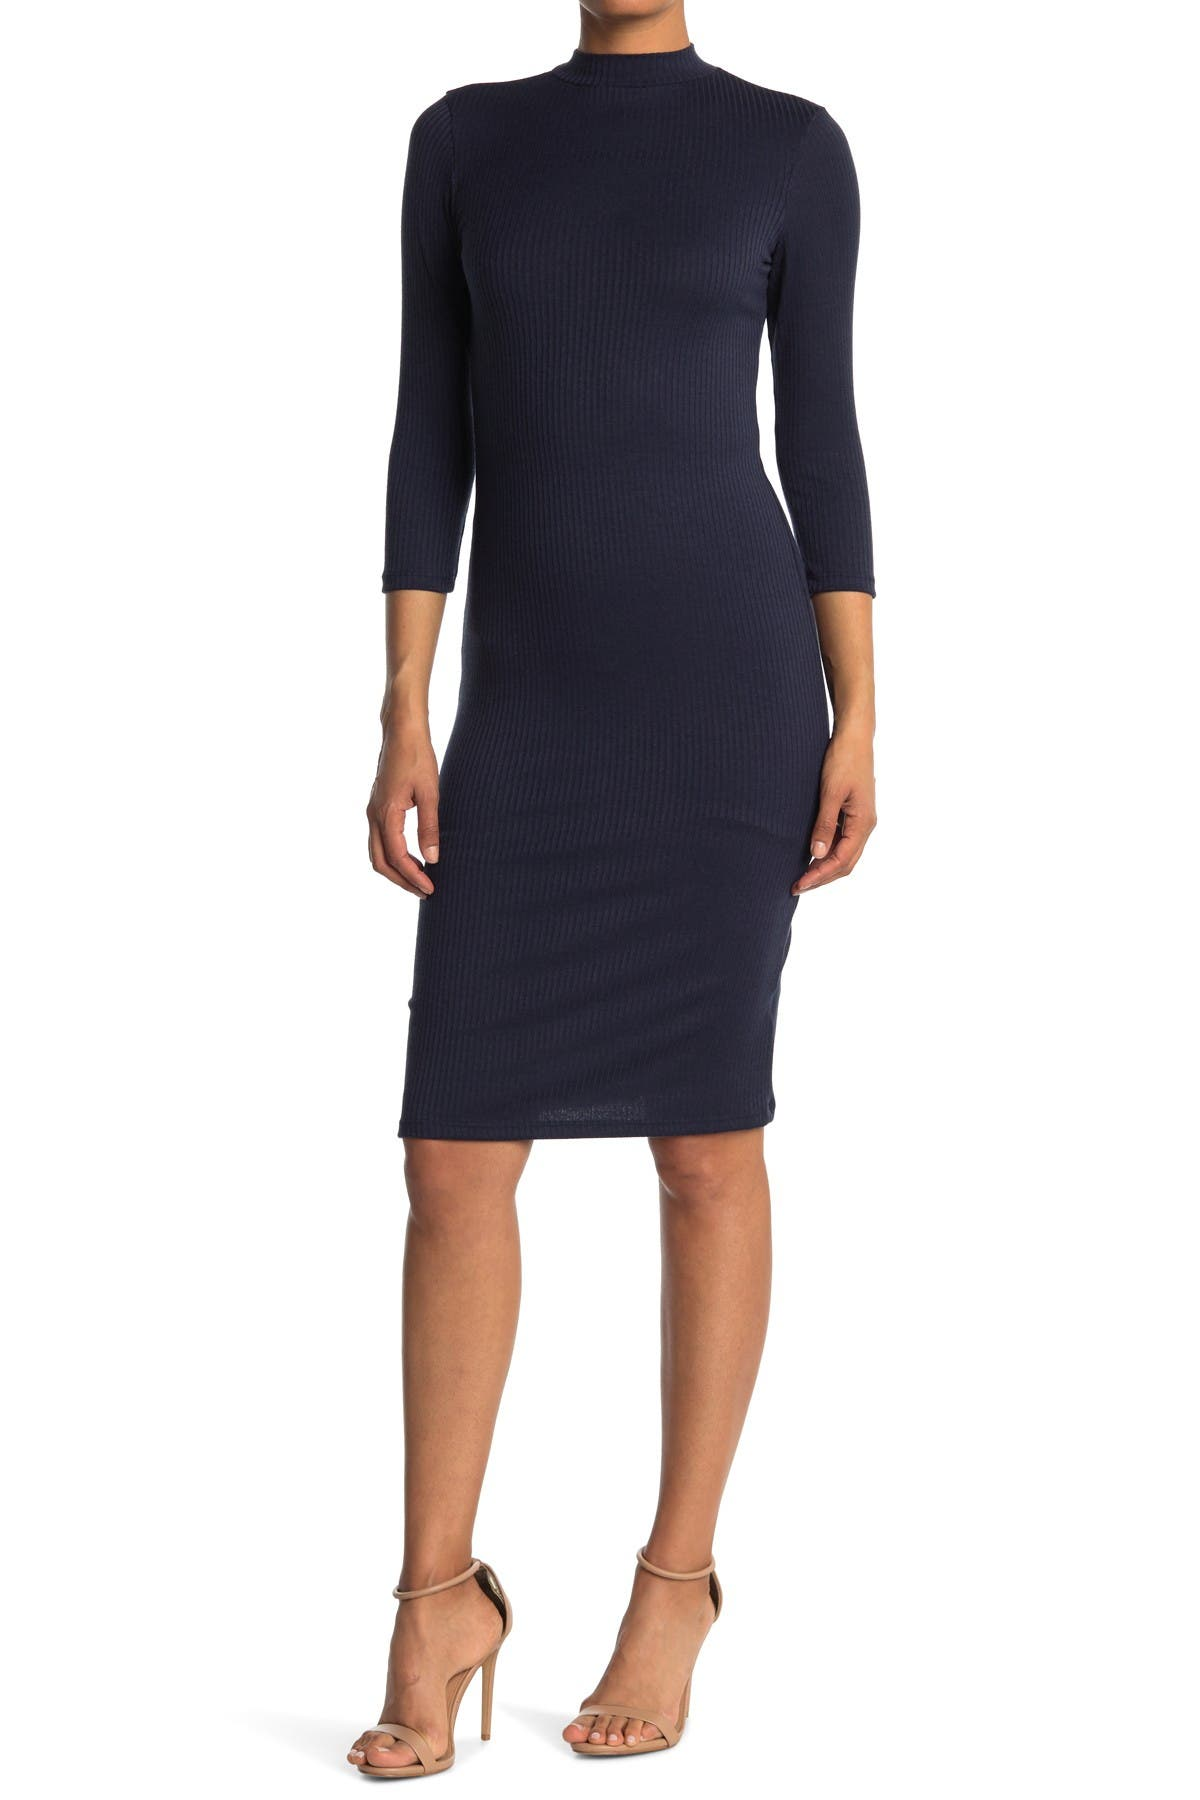 Image of Velvet Torch Ribbed Mock Neck 3/4 Sleeve Dress